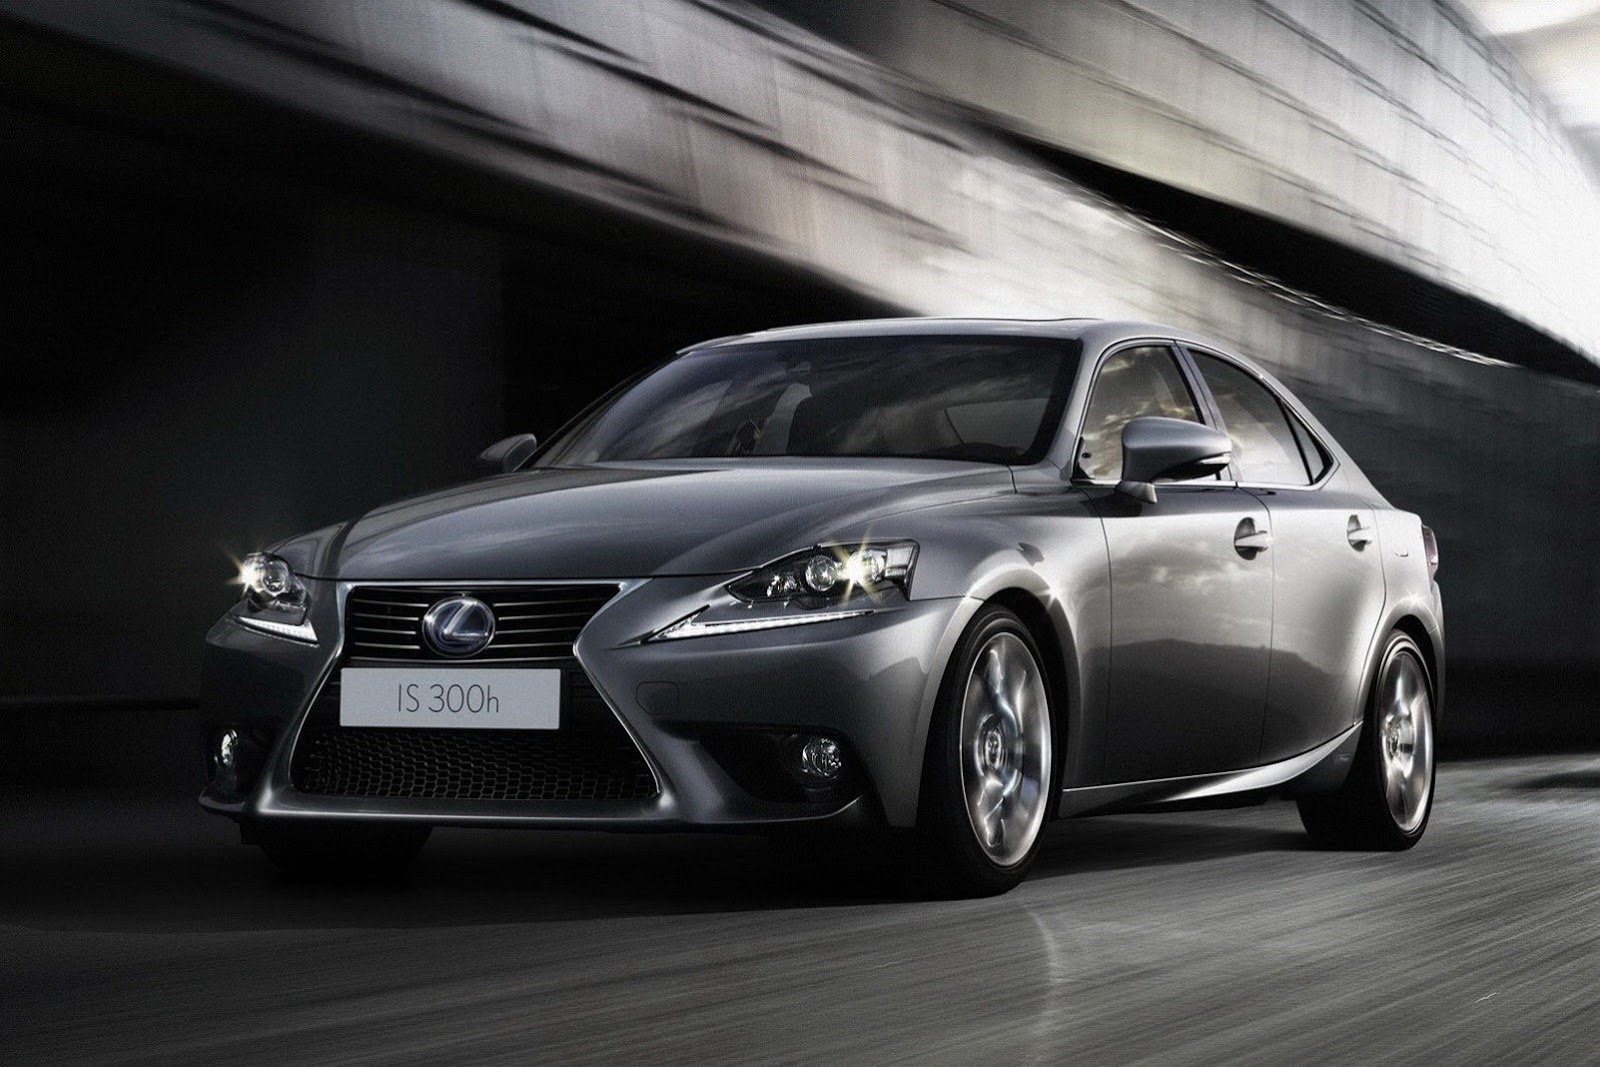 lexus-is-uk-pricing-released-55125_1